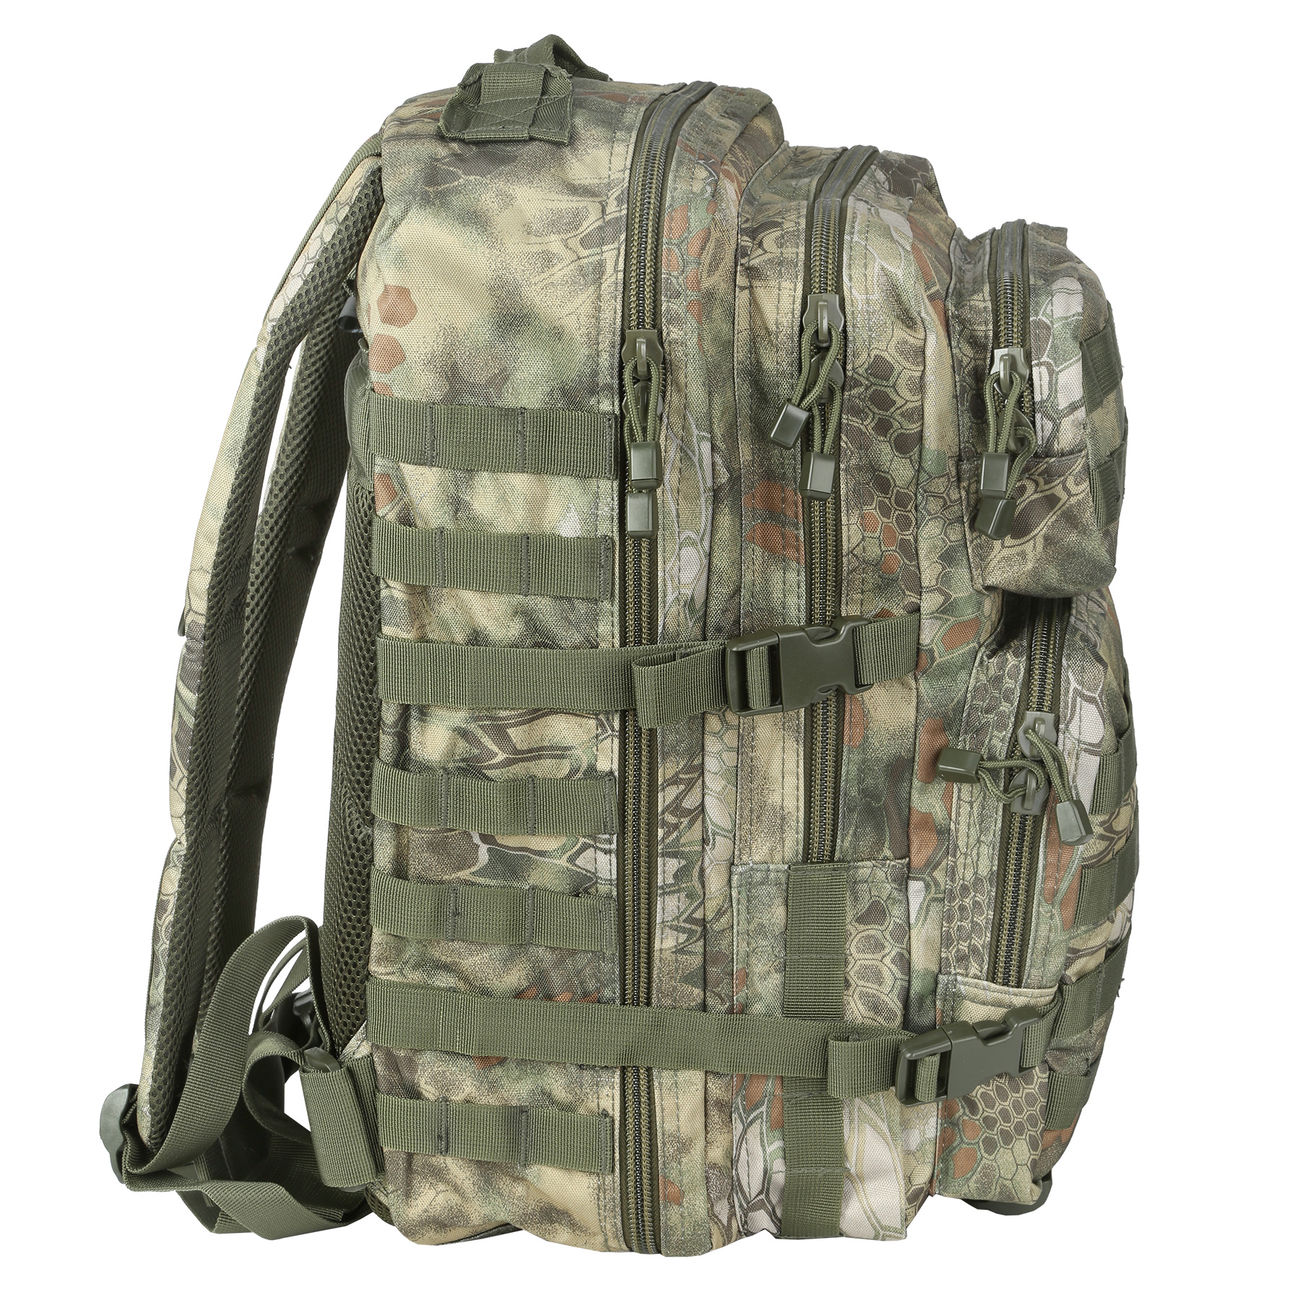 Mil-Tec Rucksack US Assault Pack II 40 Liter mandra wood 1